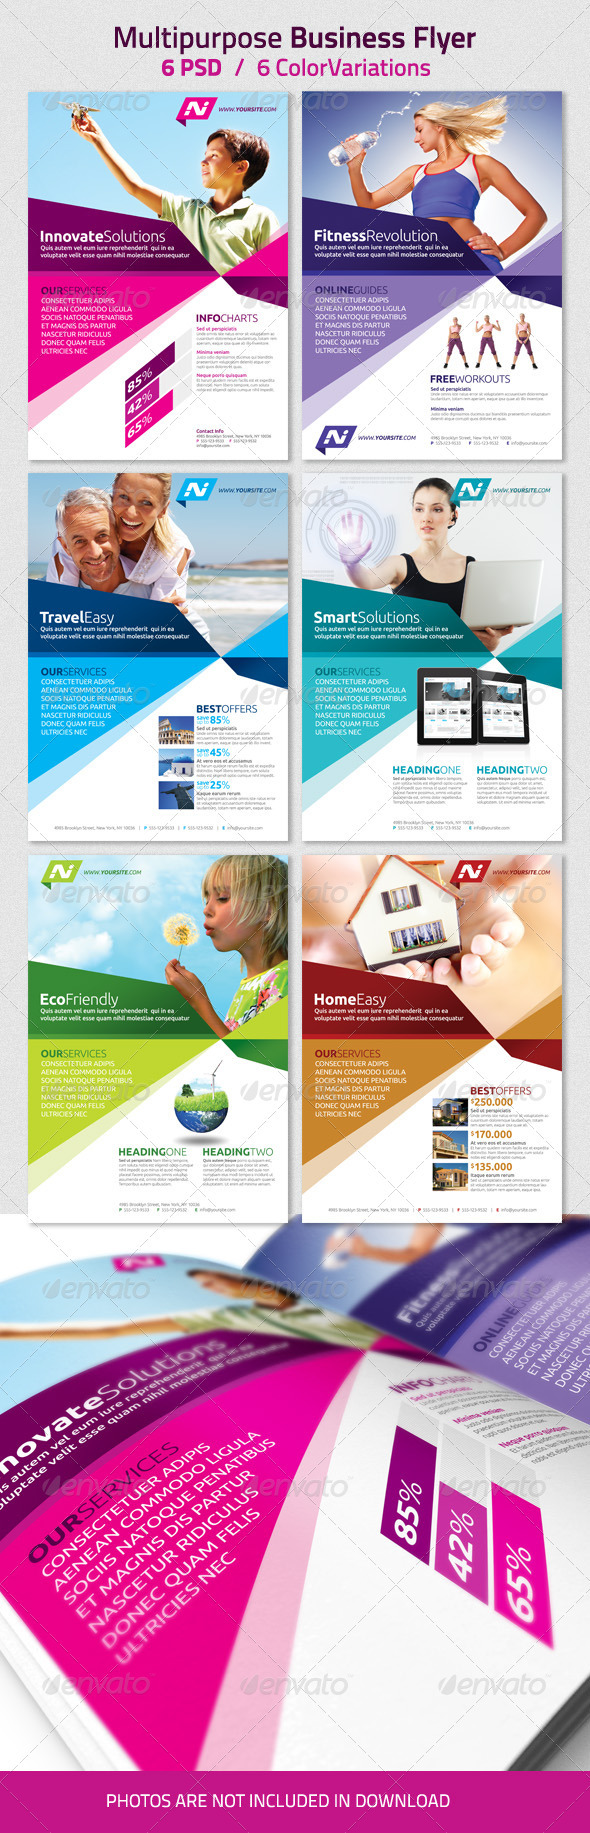 printing company flyer template .